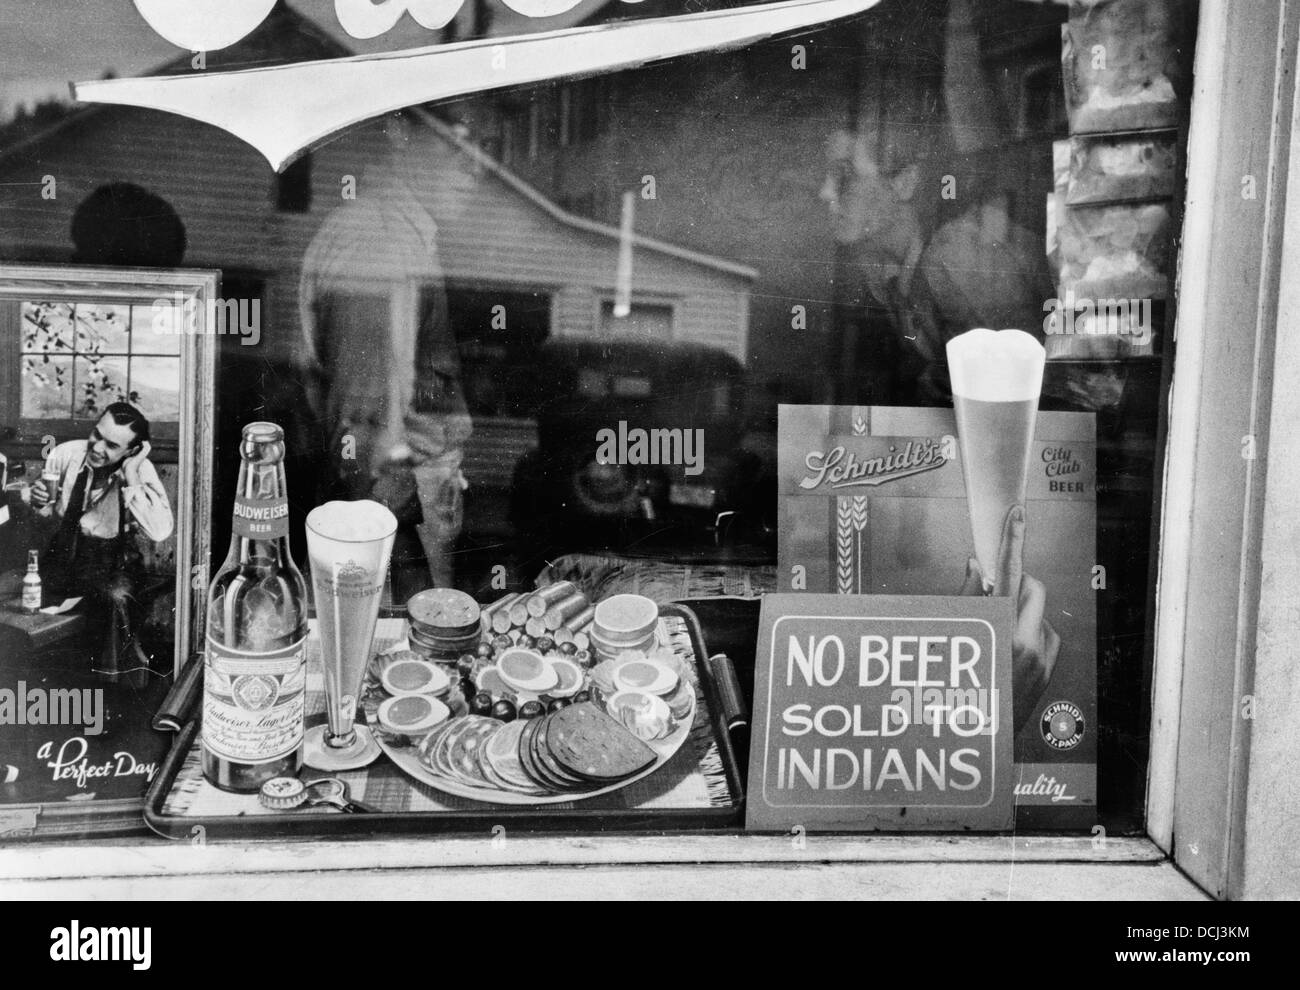 No Beer Sold to Indians - Sign in beer parlor window, Sisseton, South Dakota, circa 1939 Stock Photo